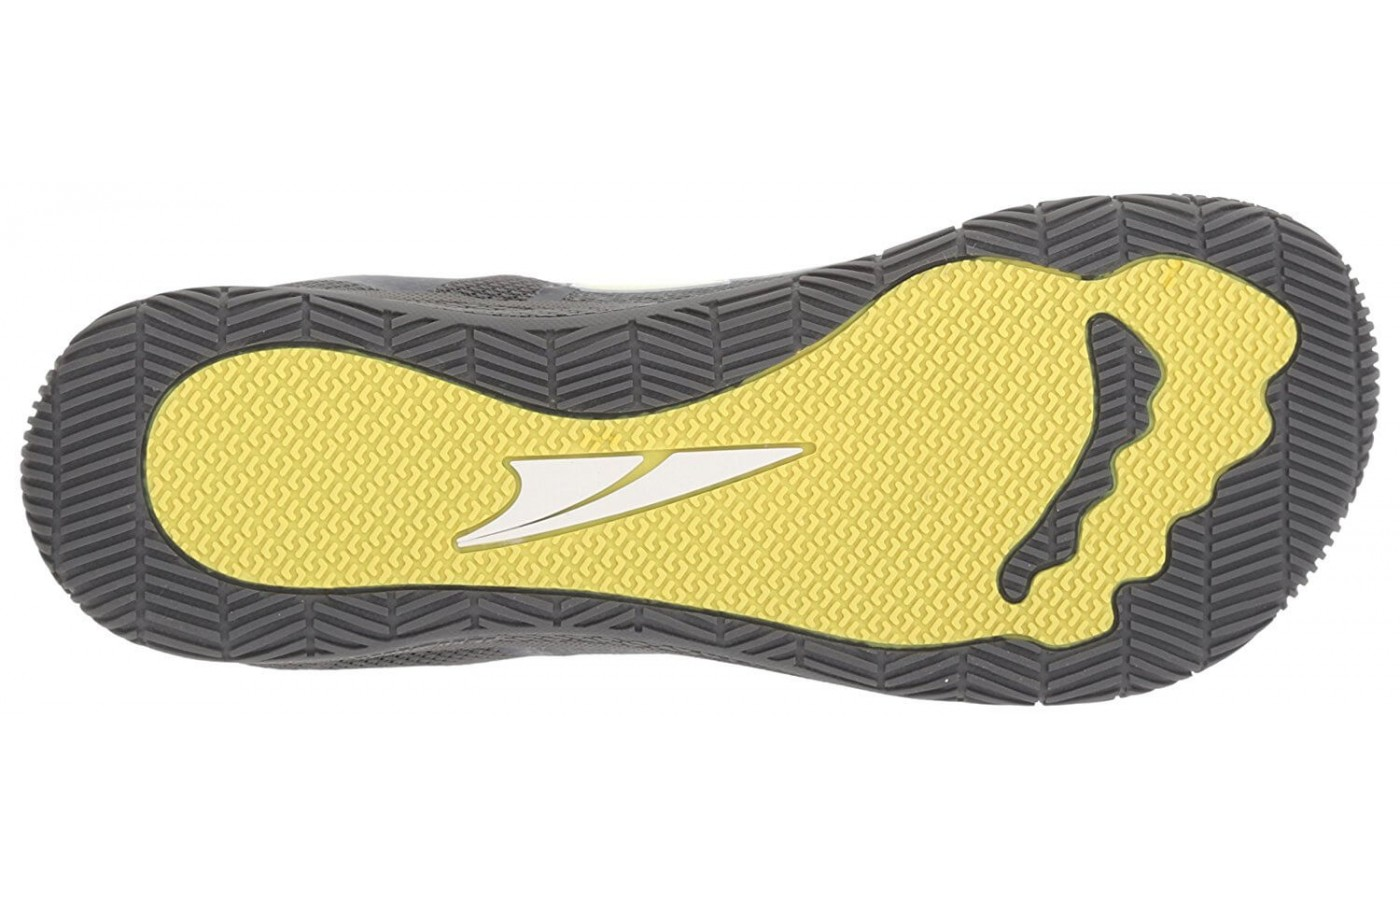 The Altra HIIT XT features a rubber outsole